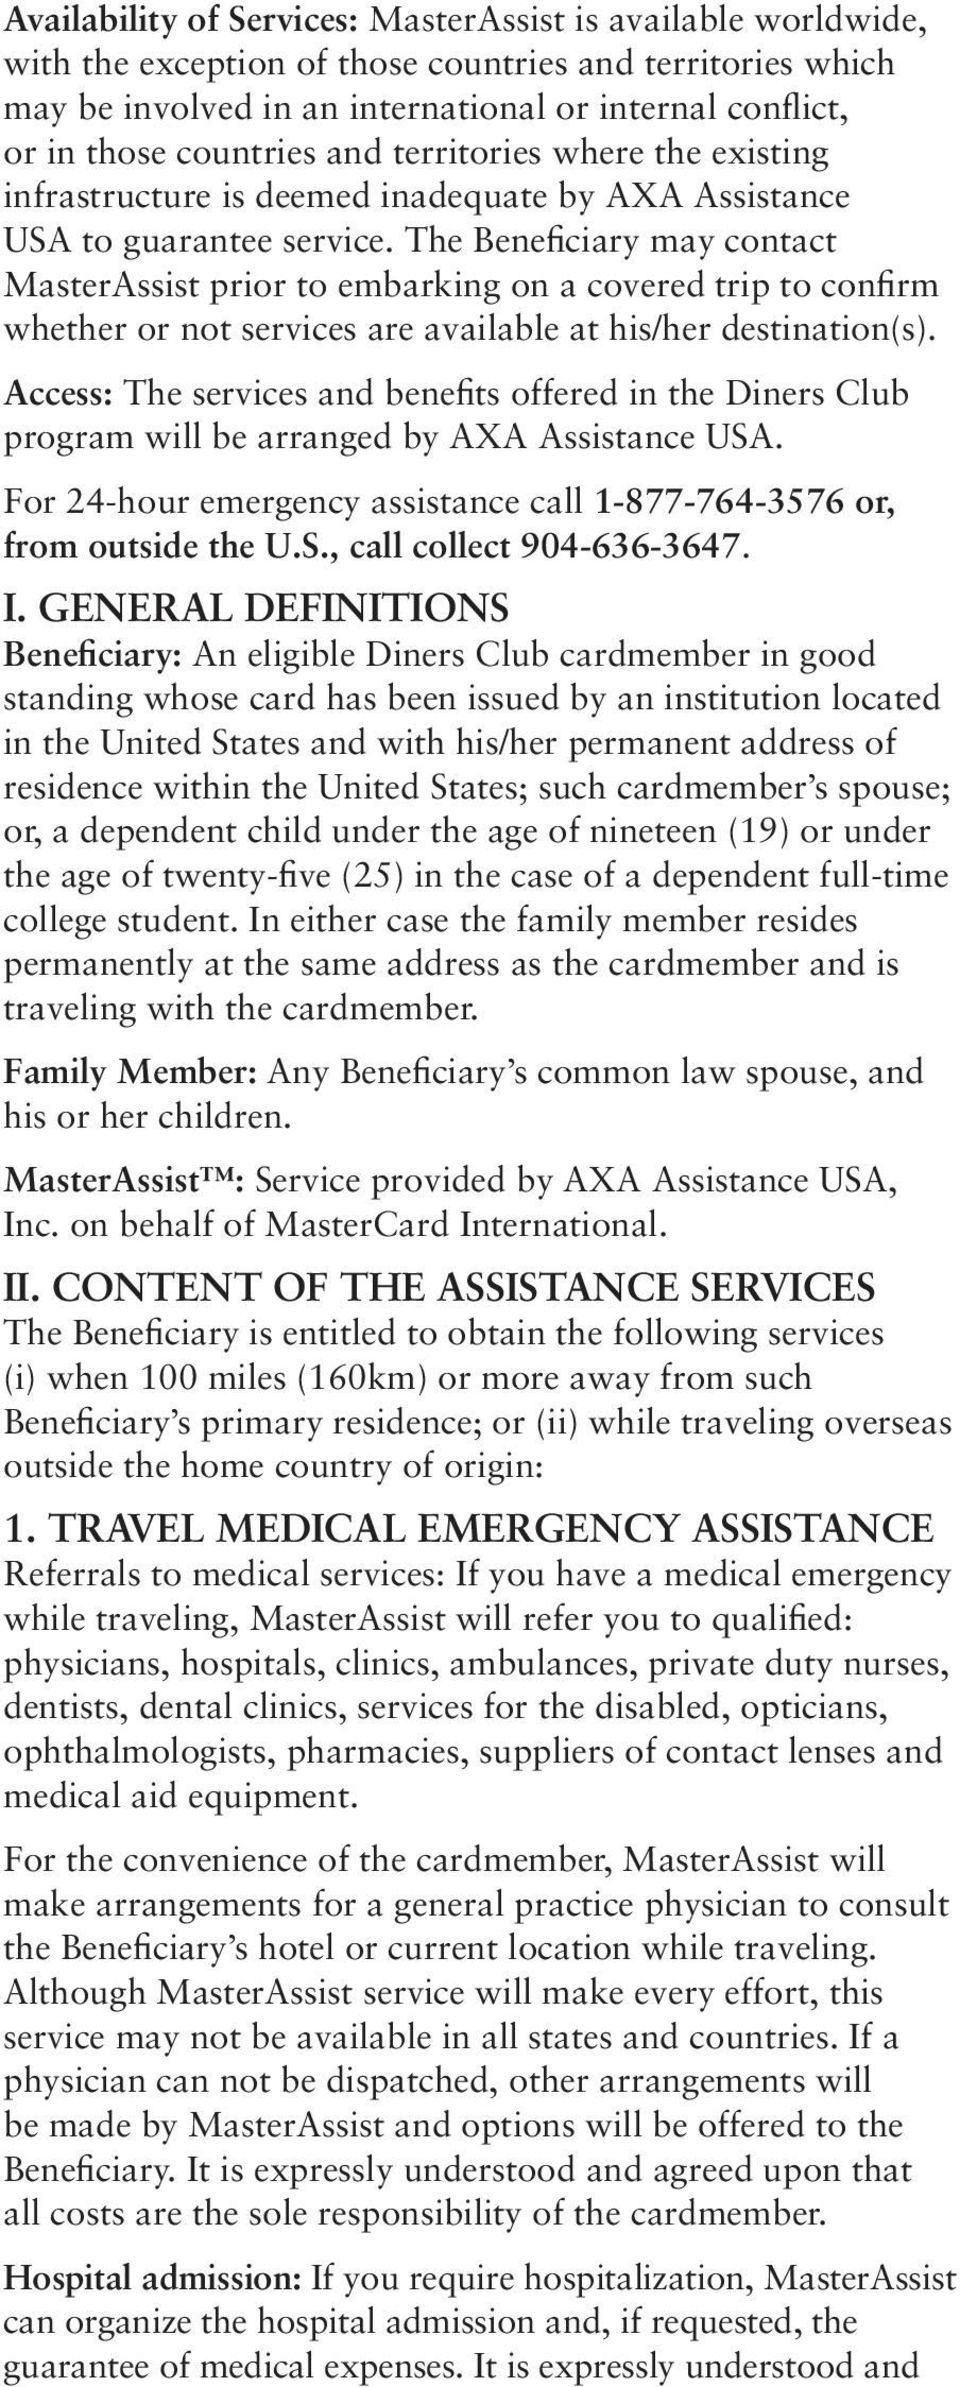 The Beneficiary may contact MasterAssist prior to embarking on a covered trip to confirm whether or not services are available at his/her destination(s).